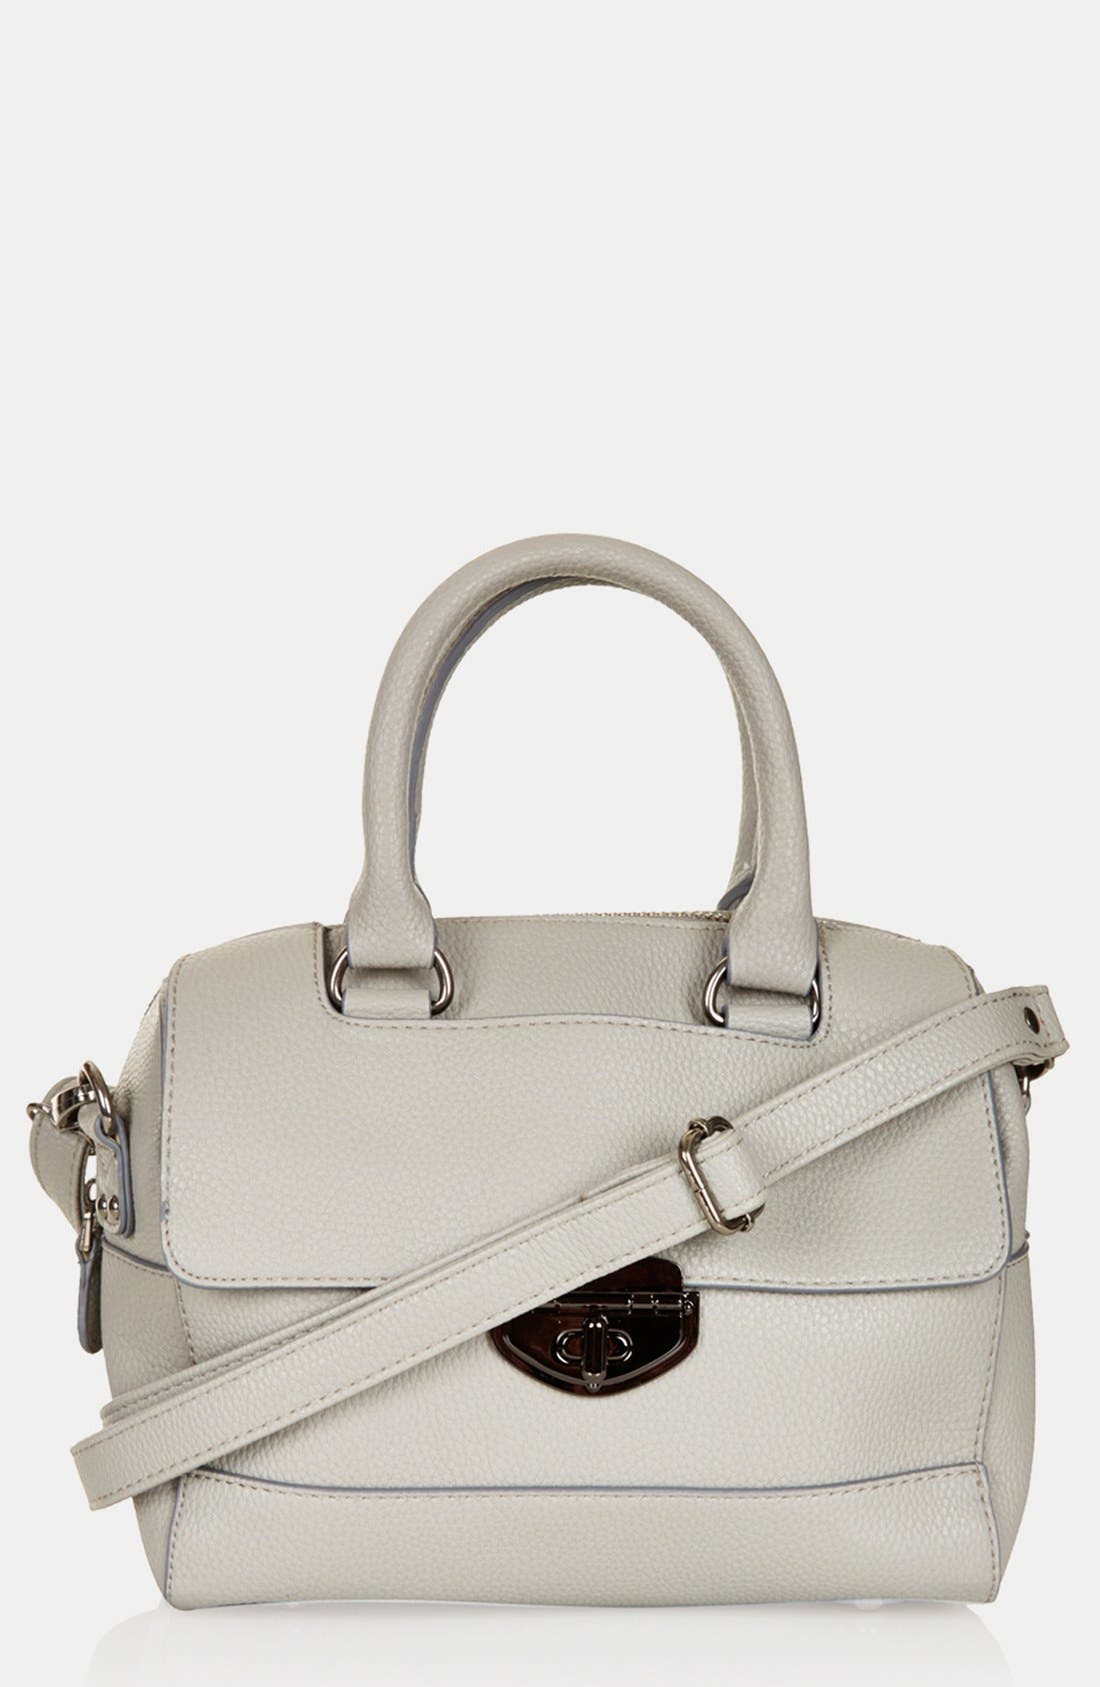 TOPSHOP, Faux Leather Mini Satchel, Main thumbnail 1, color, 020